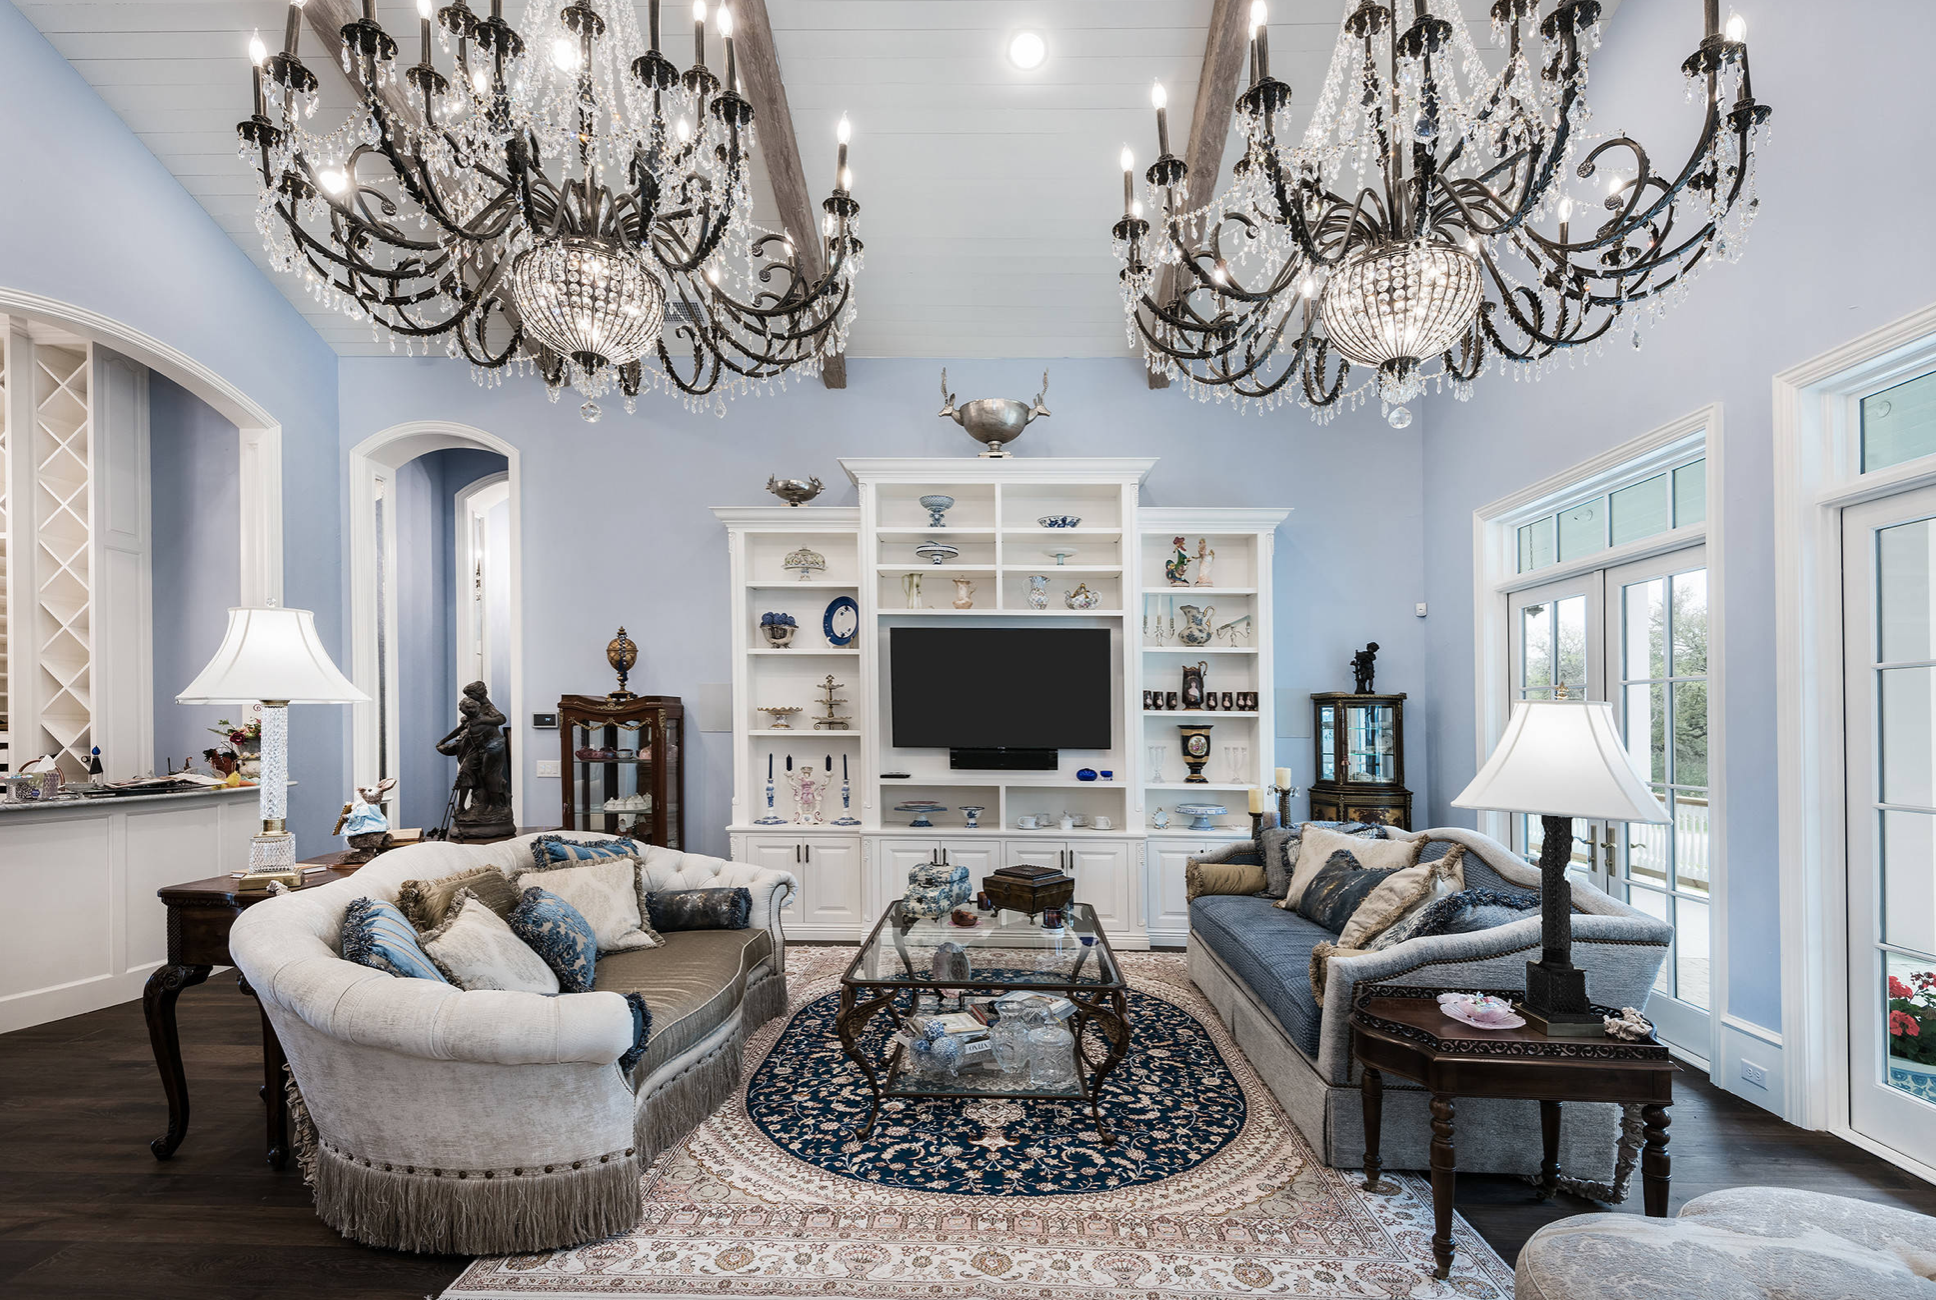 Traditional Style Blue Living Room Decor With Victorian Style Chandelier Blue Living Room Blue Living Room Decor Victorian Home Decor